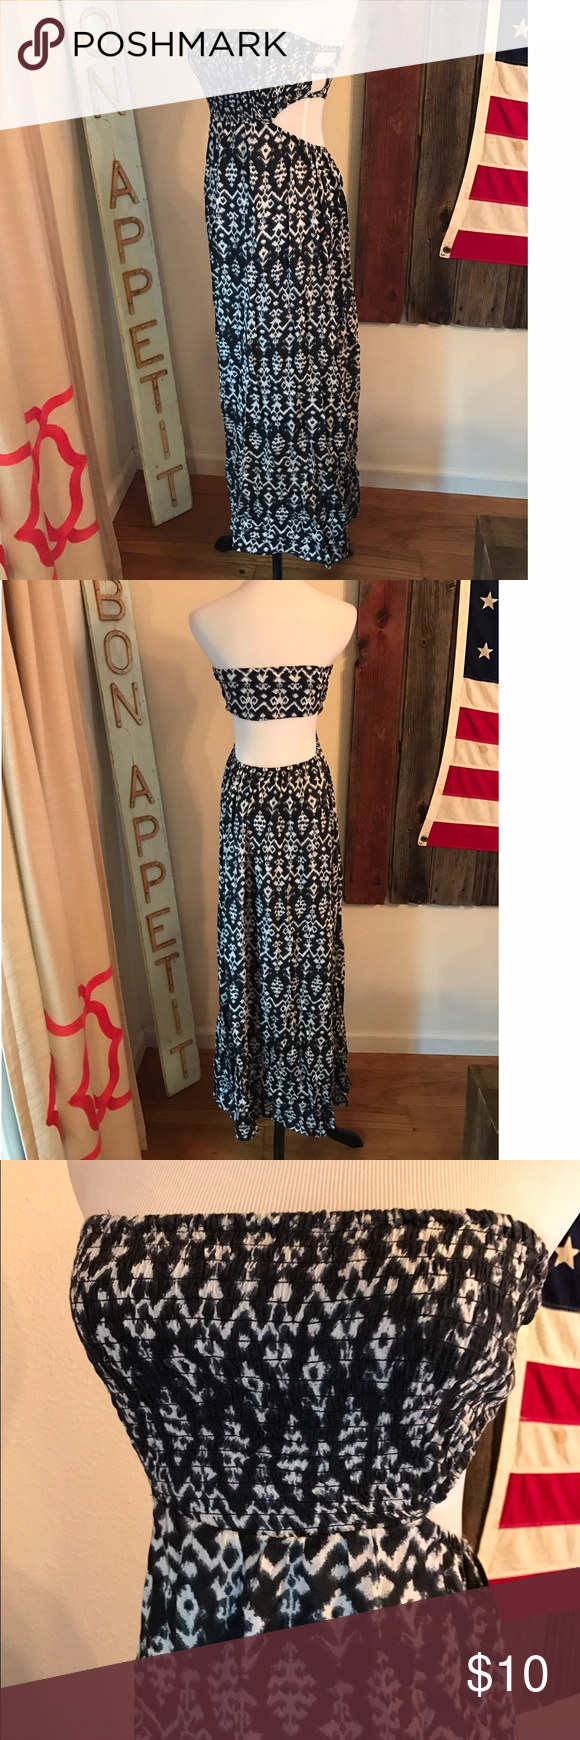 Forever 21 Strapless Cut out Dress Navy & White Ikat Print Strapless Maxi. Smocked front and cut sides/bag. Side slit on right. Flattering & comfy. Worn once, great condition.. Forever 21 Dresses Maxi